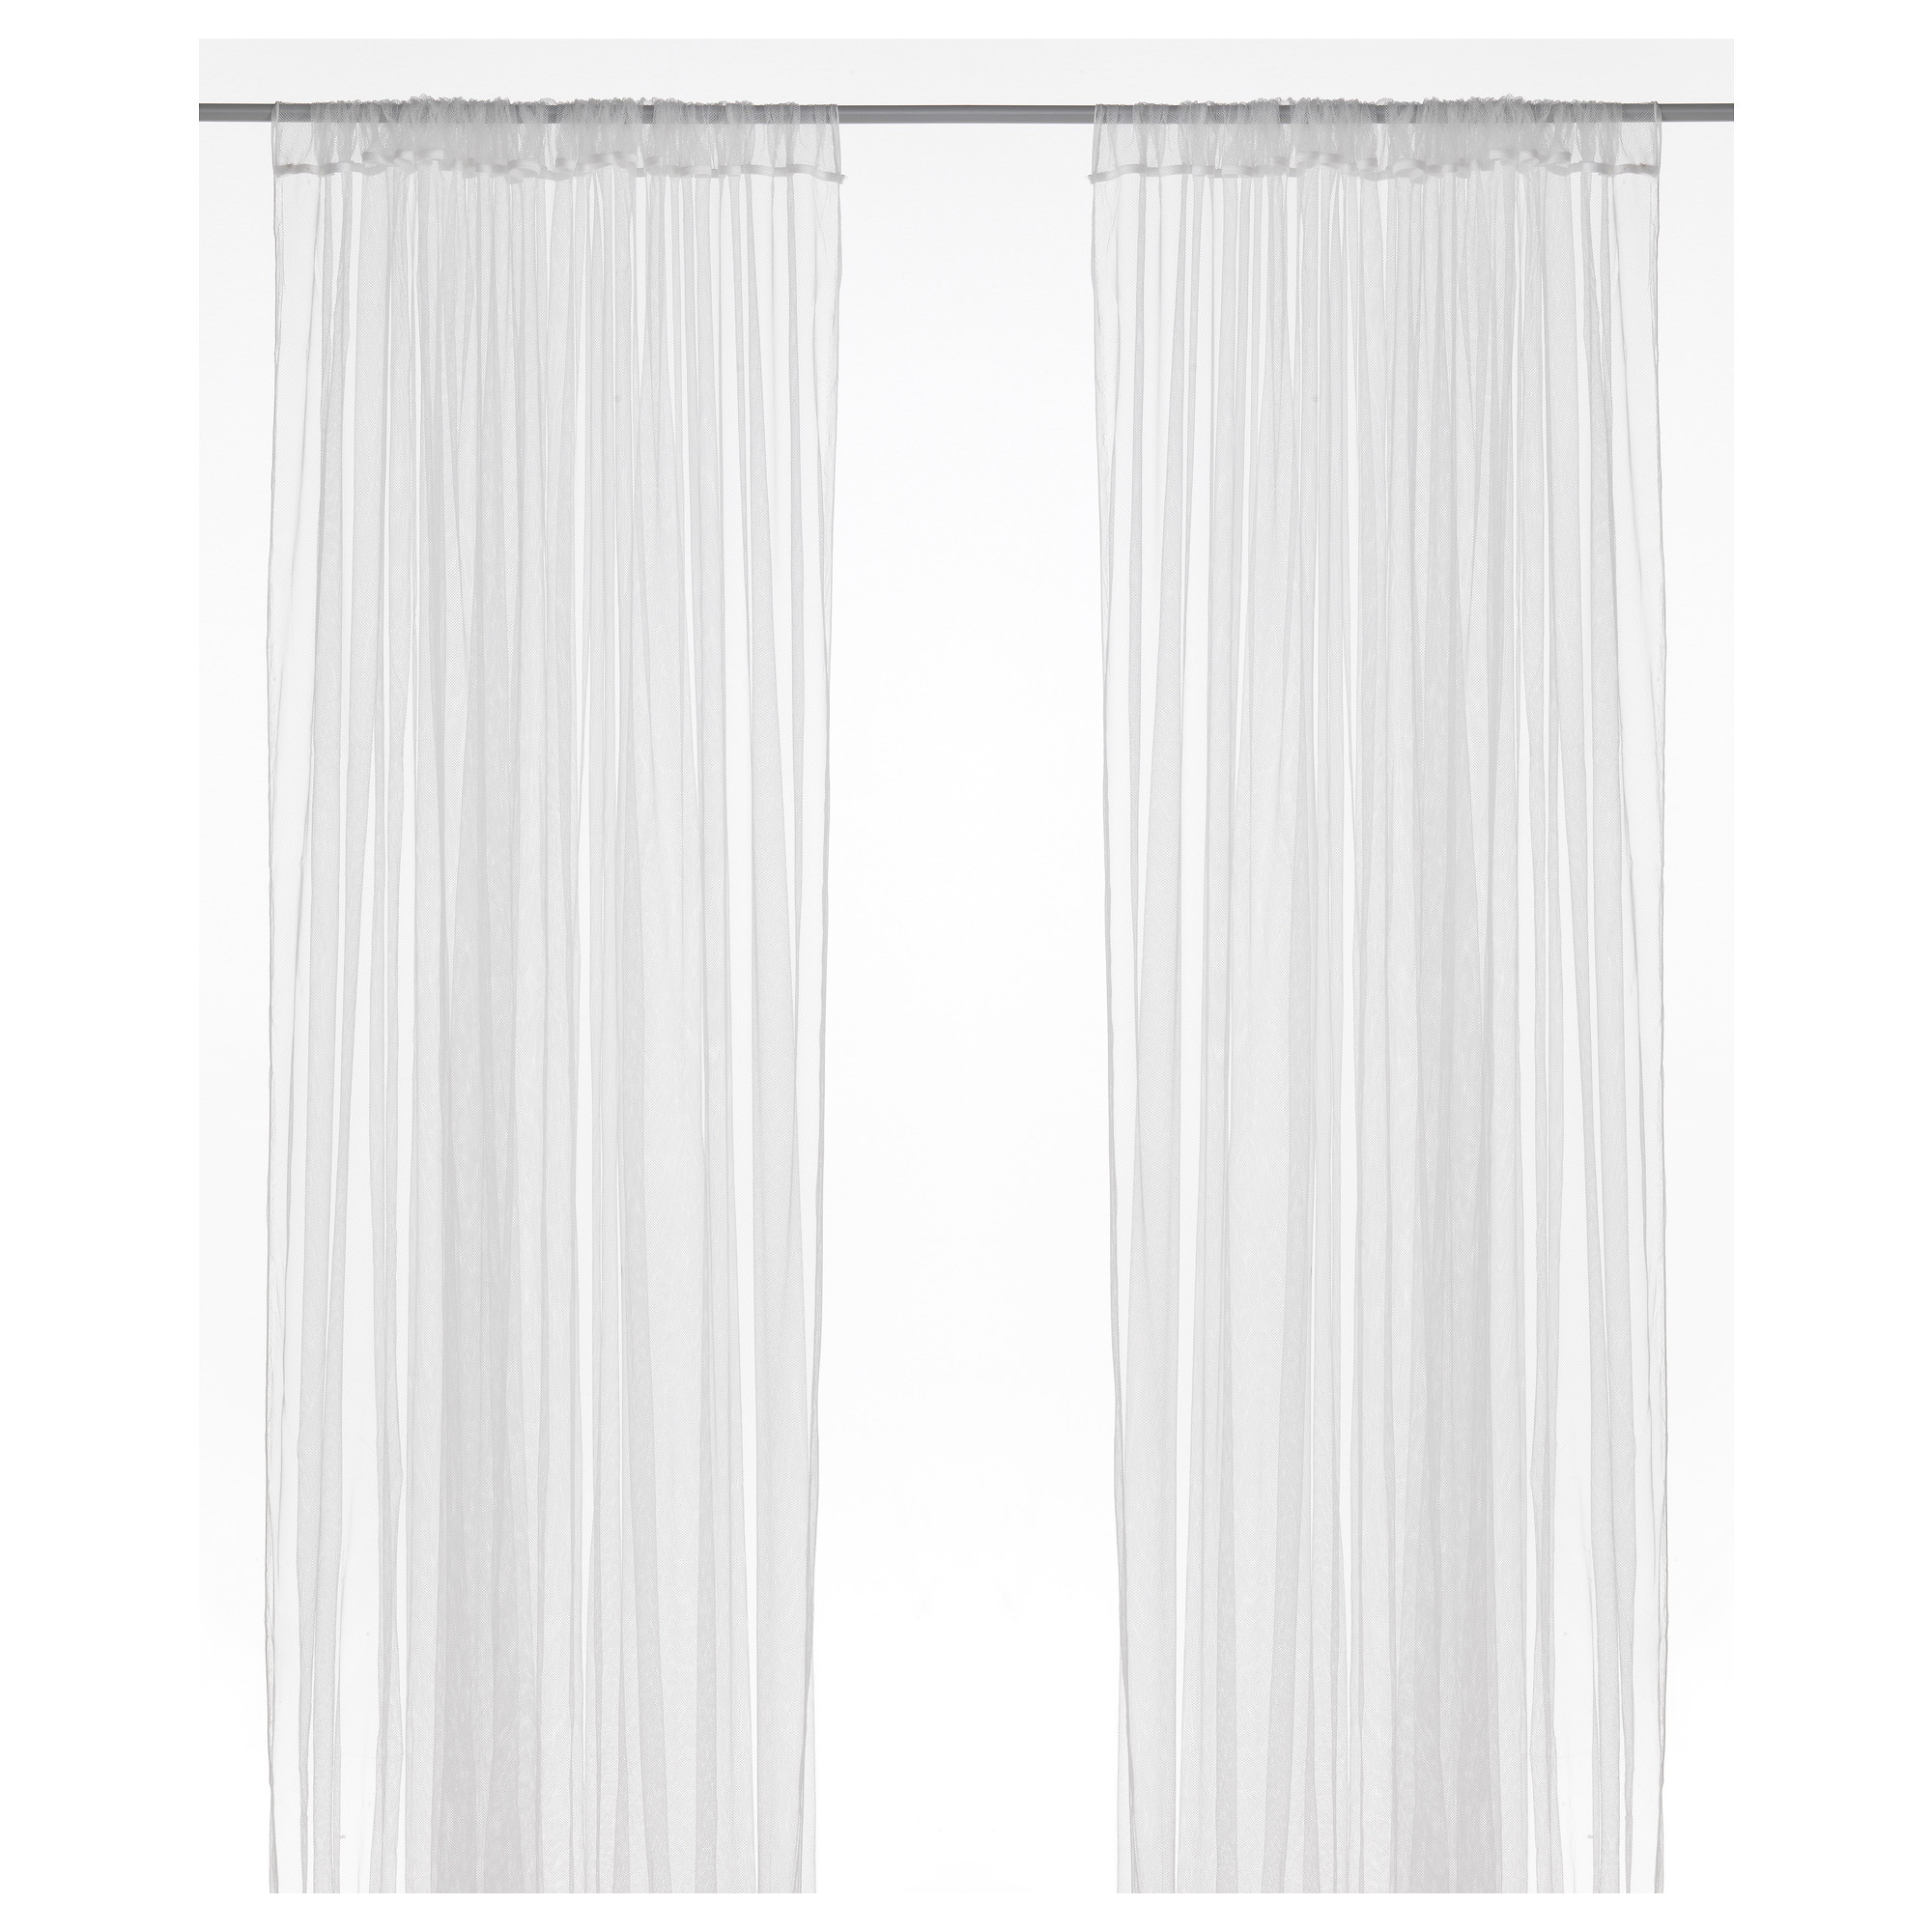 lill lace curtains 1 pair white prop me up pinterest lumiere du jour habillages de. Black Bedroom Furniture Sets. Home Design Ideas